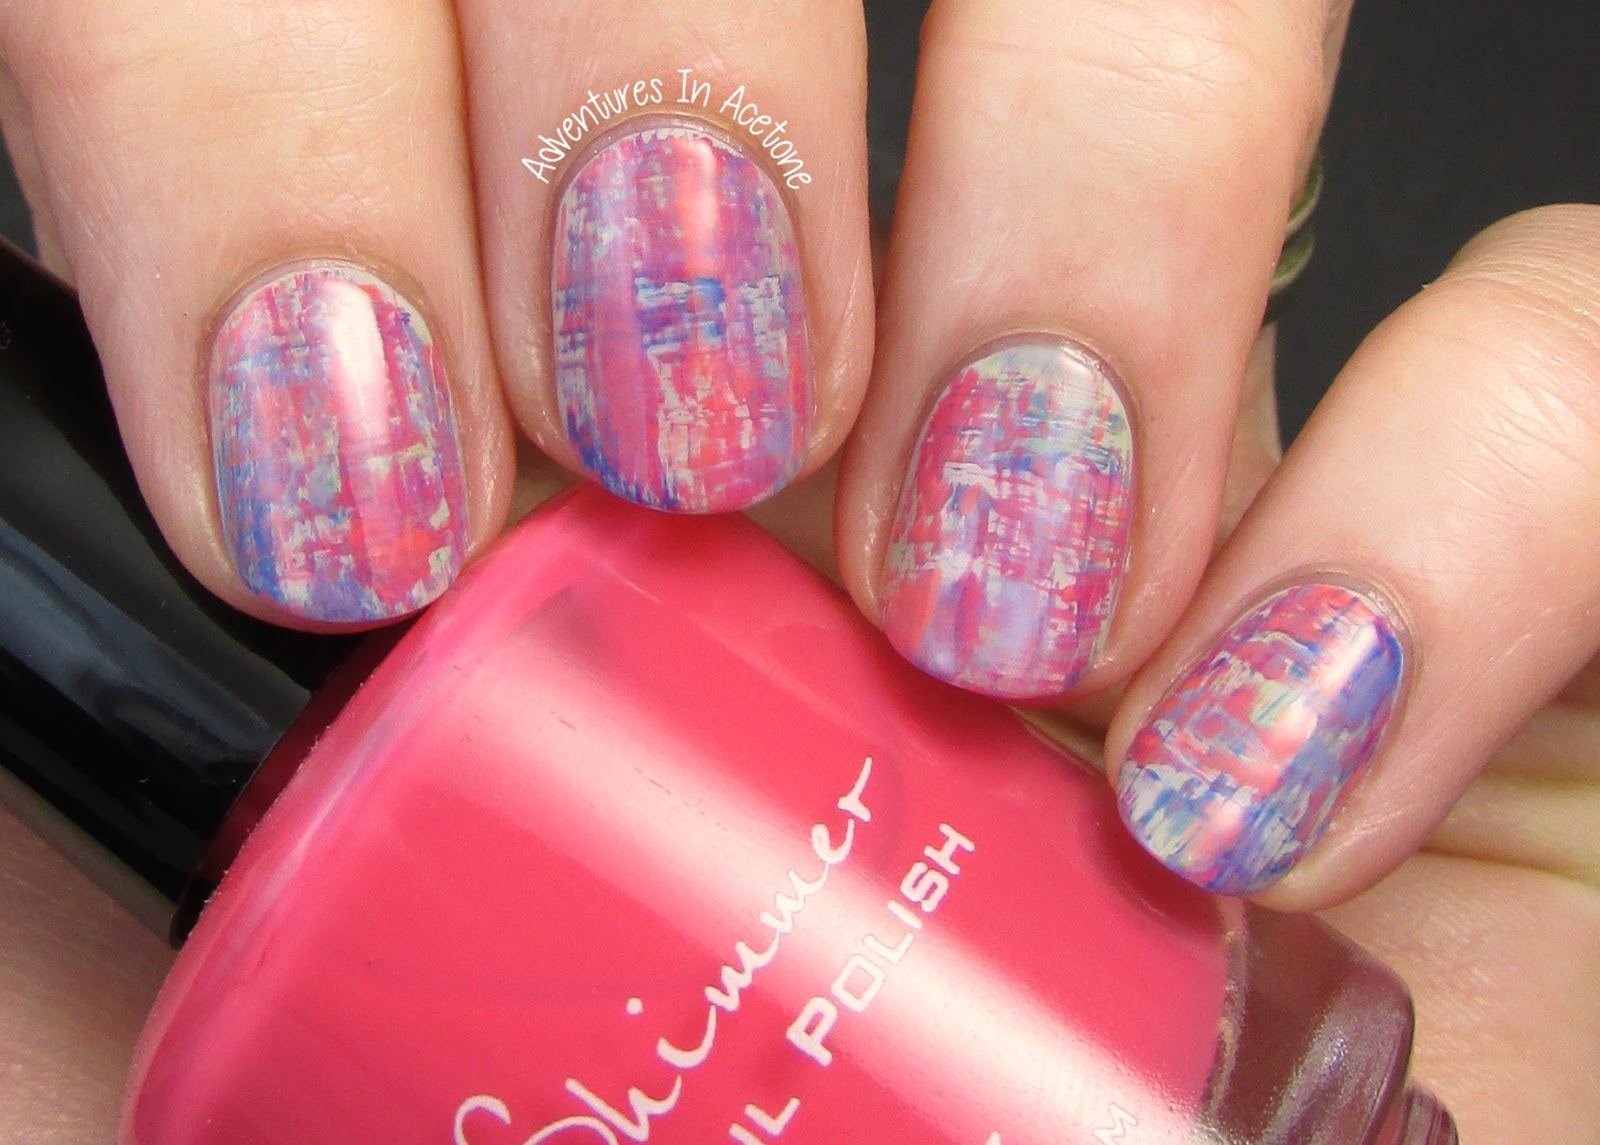 Dry Brush Nail Art with KBShimmer! - Adventures In Acetone